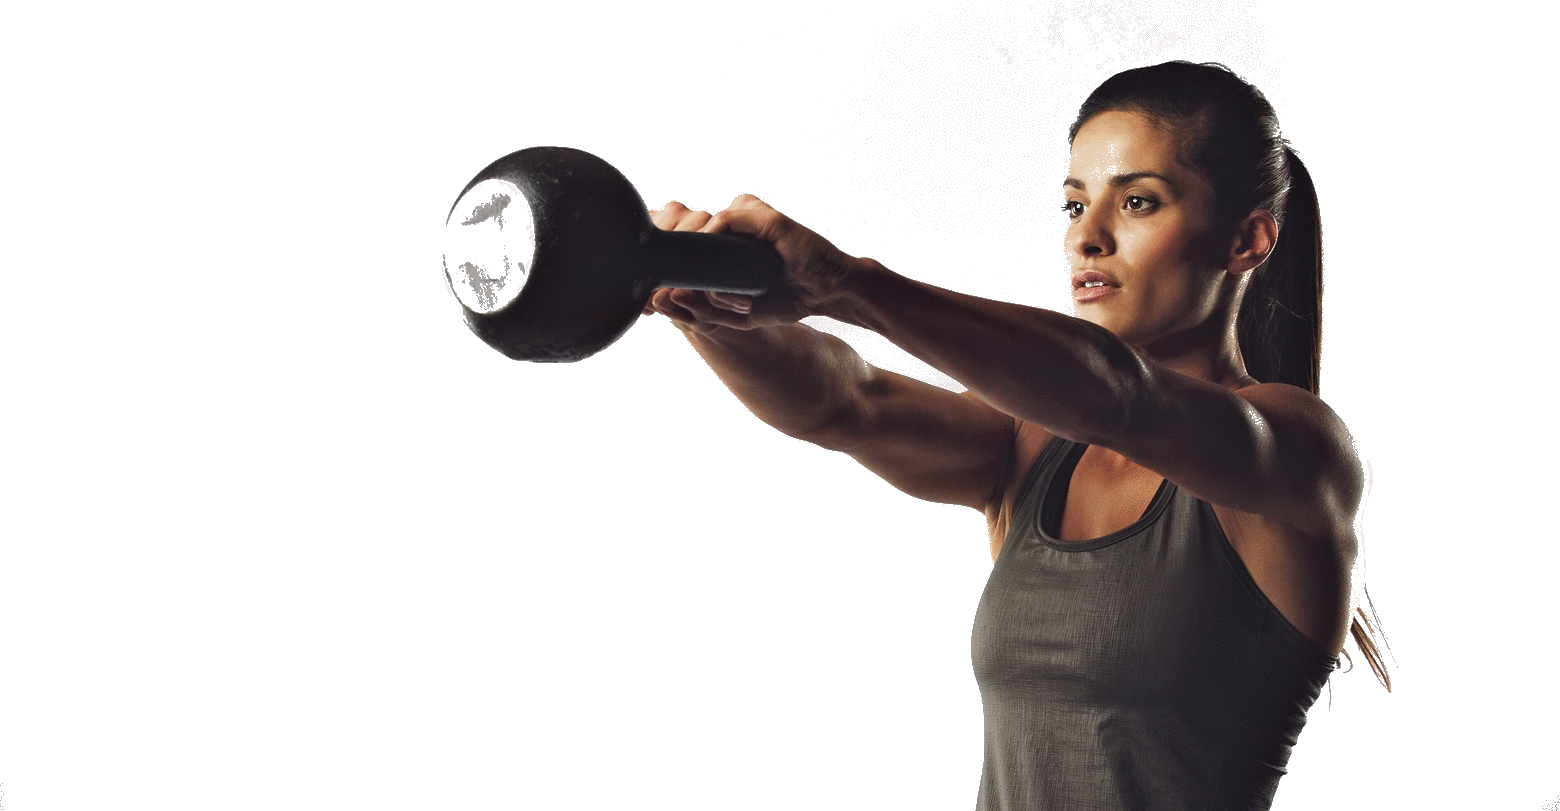 BEST Kettlebell Exercise For Fat Loss (Coaching Video)